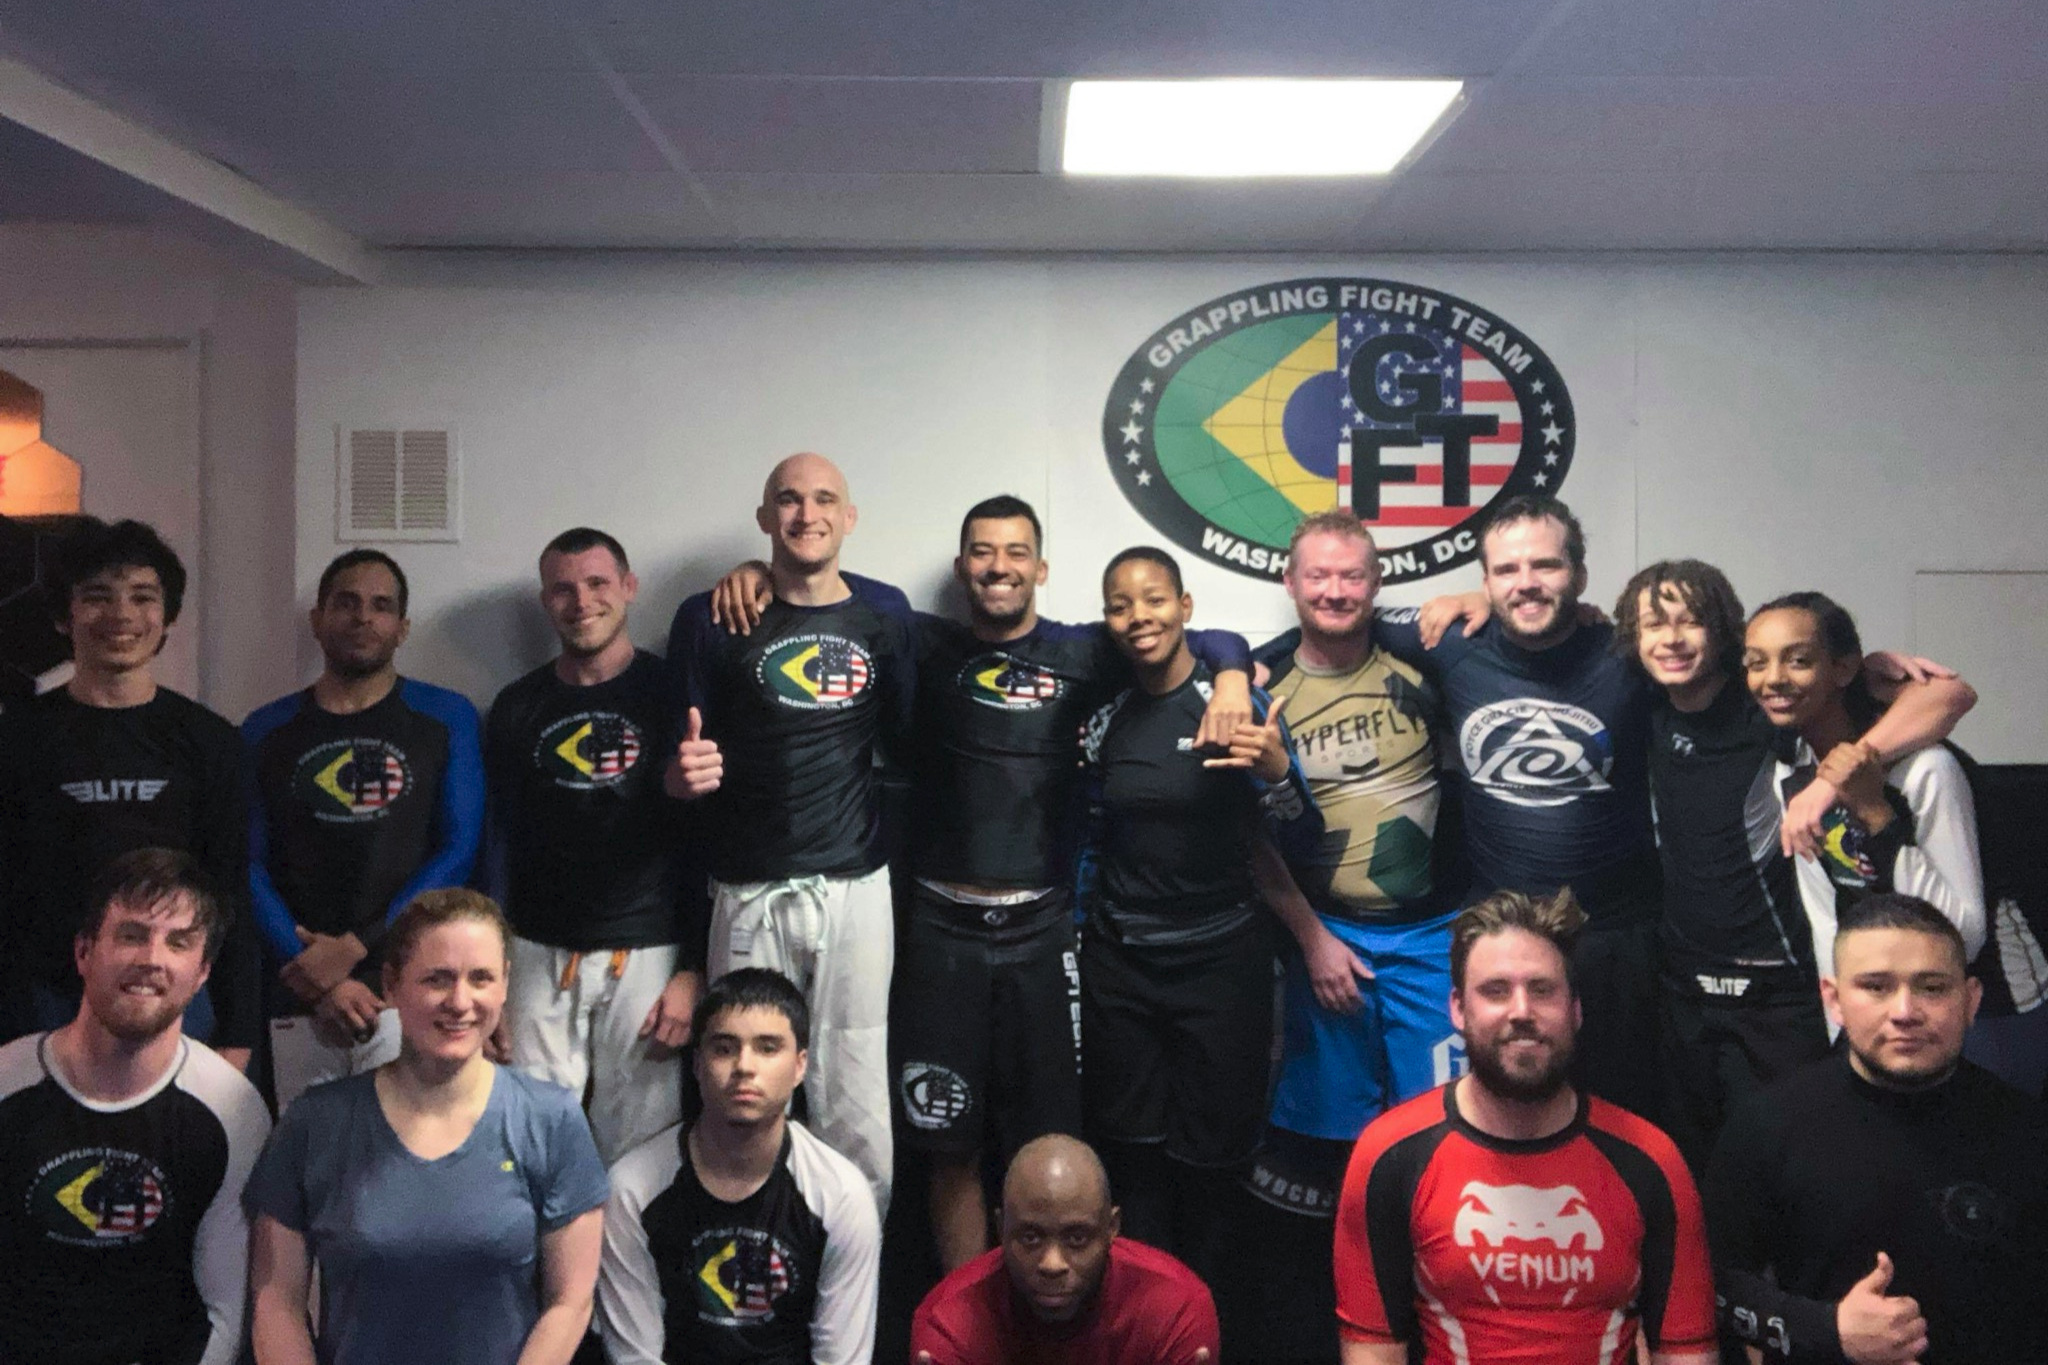 We are grateful for the hospitality shown to us by Instructor Deivid Dias and his students at WDC BJJ.